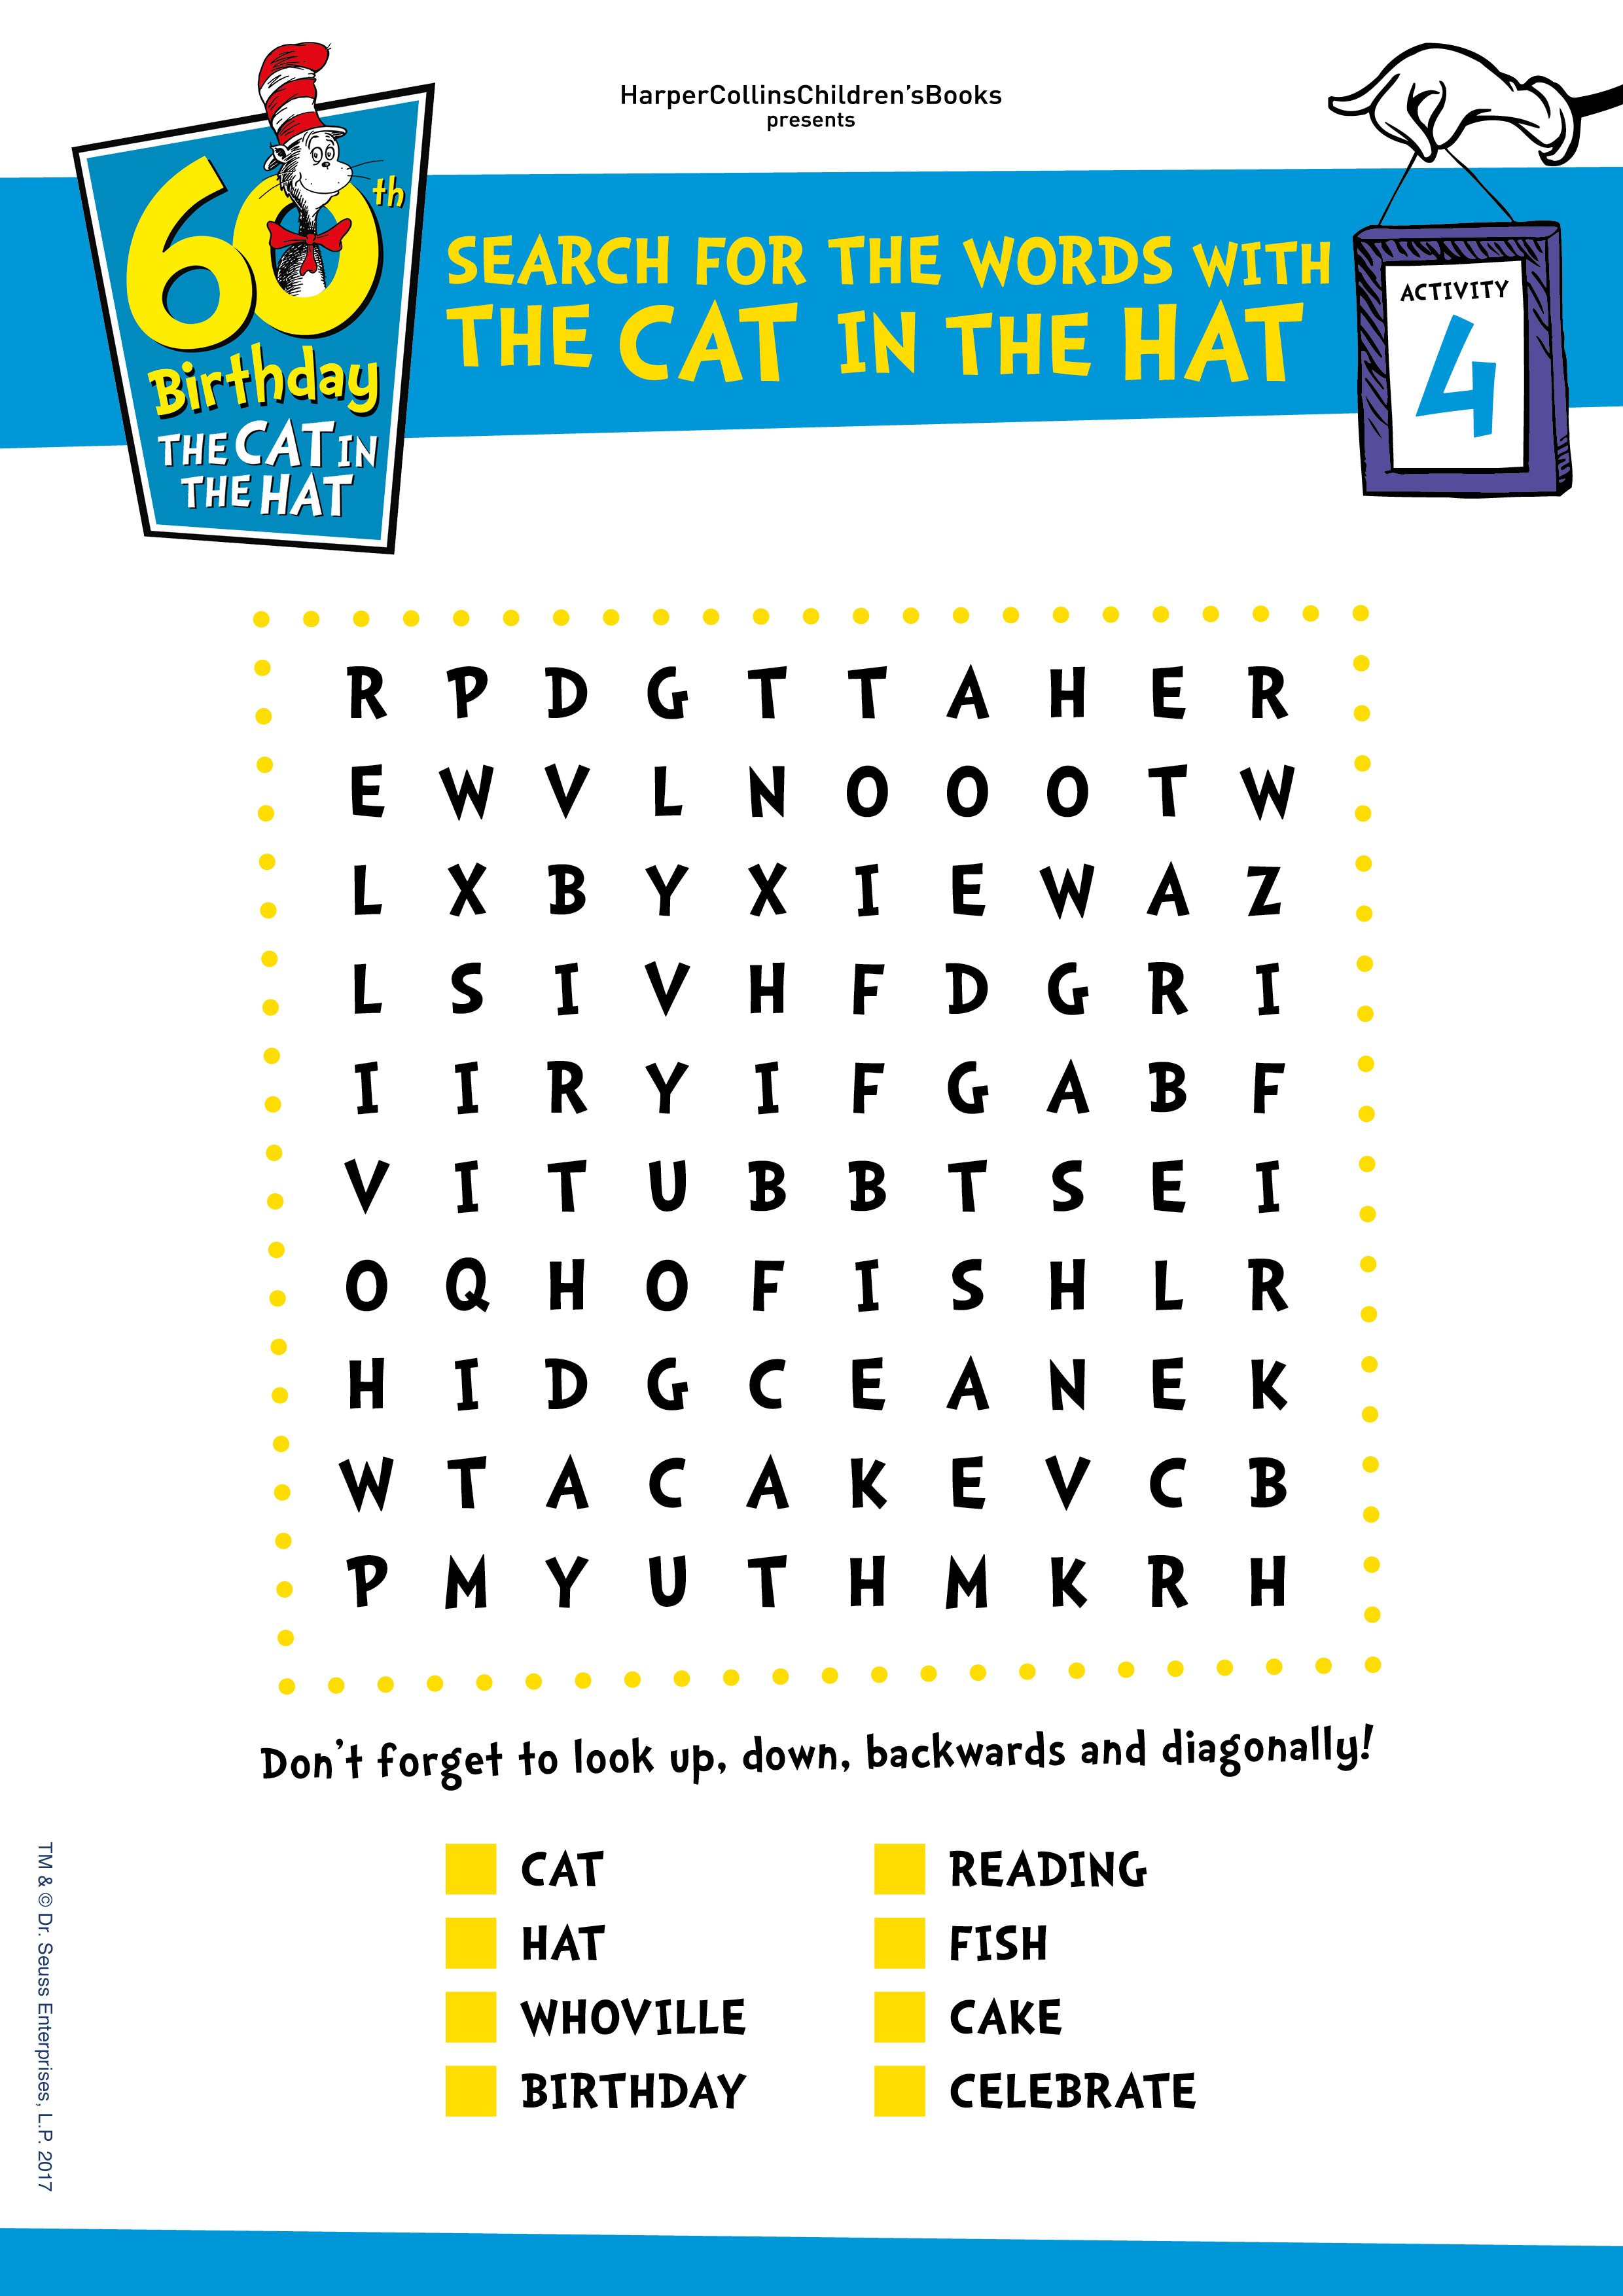 The Cat In The Hat 60th Birthday Activity Sheets